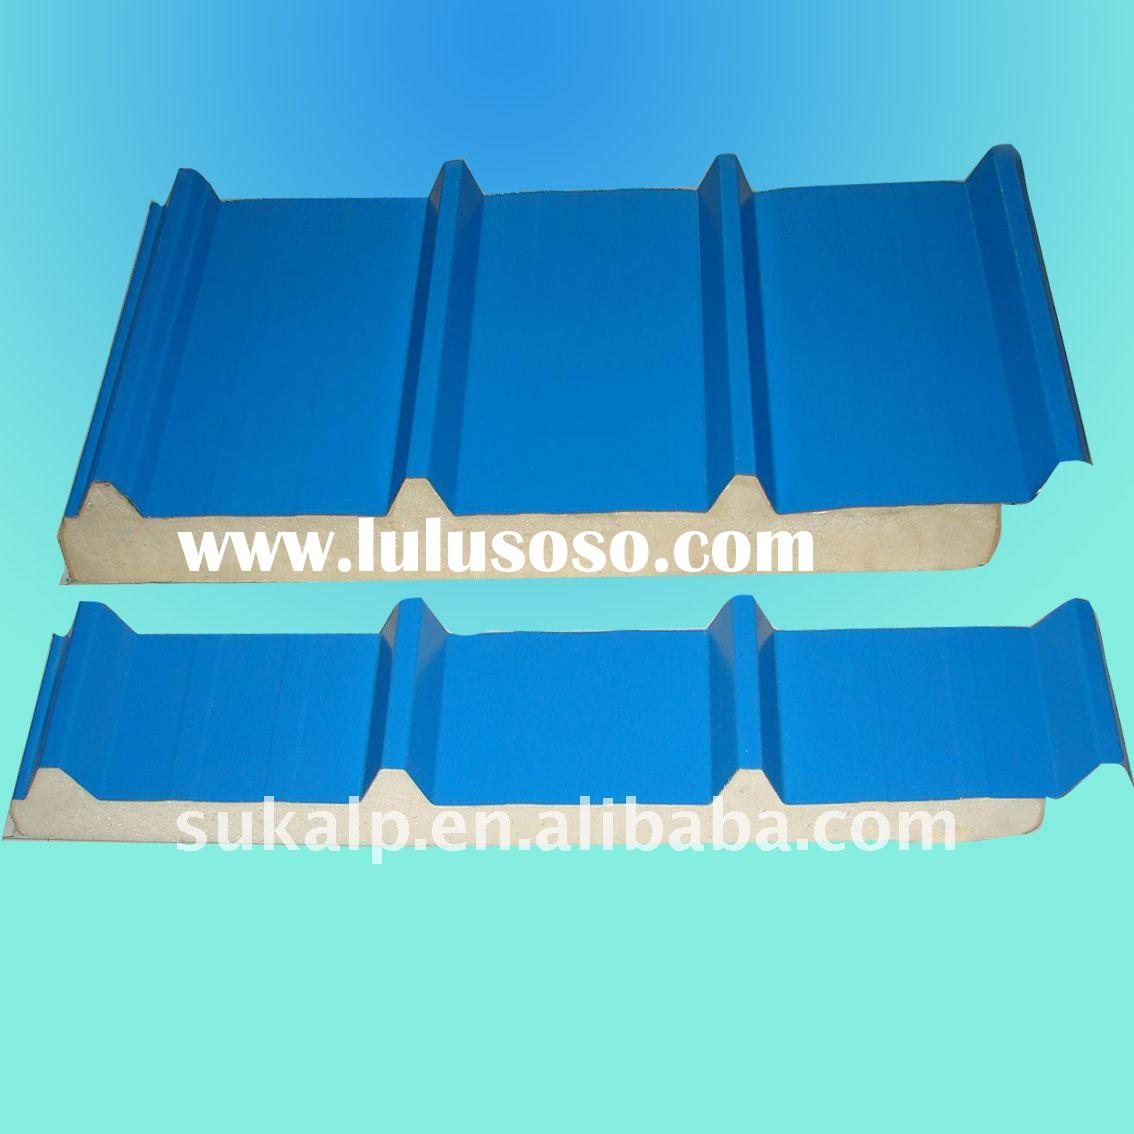 Structural Insulated Panels Sips For Sale Price China